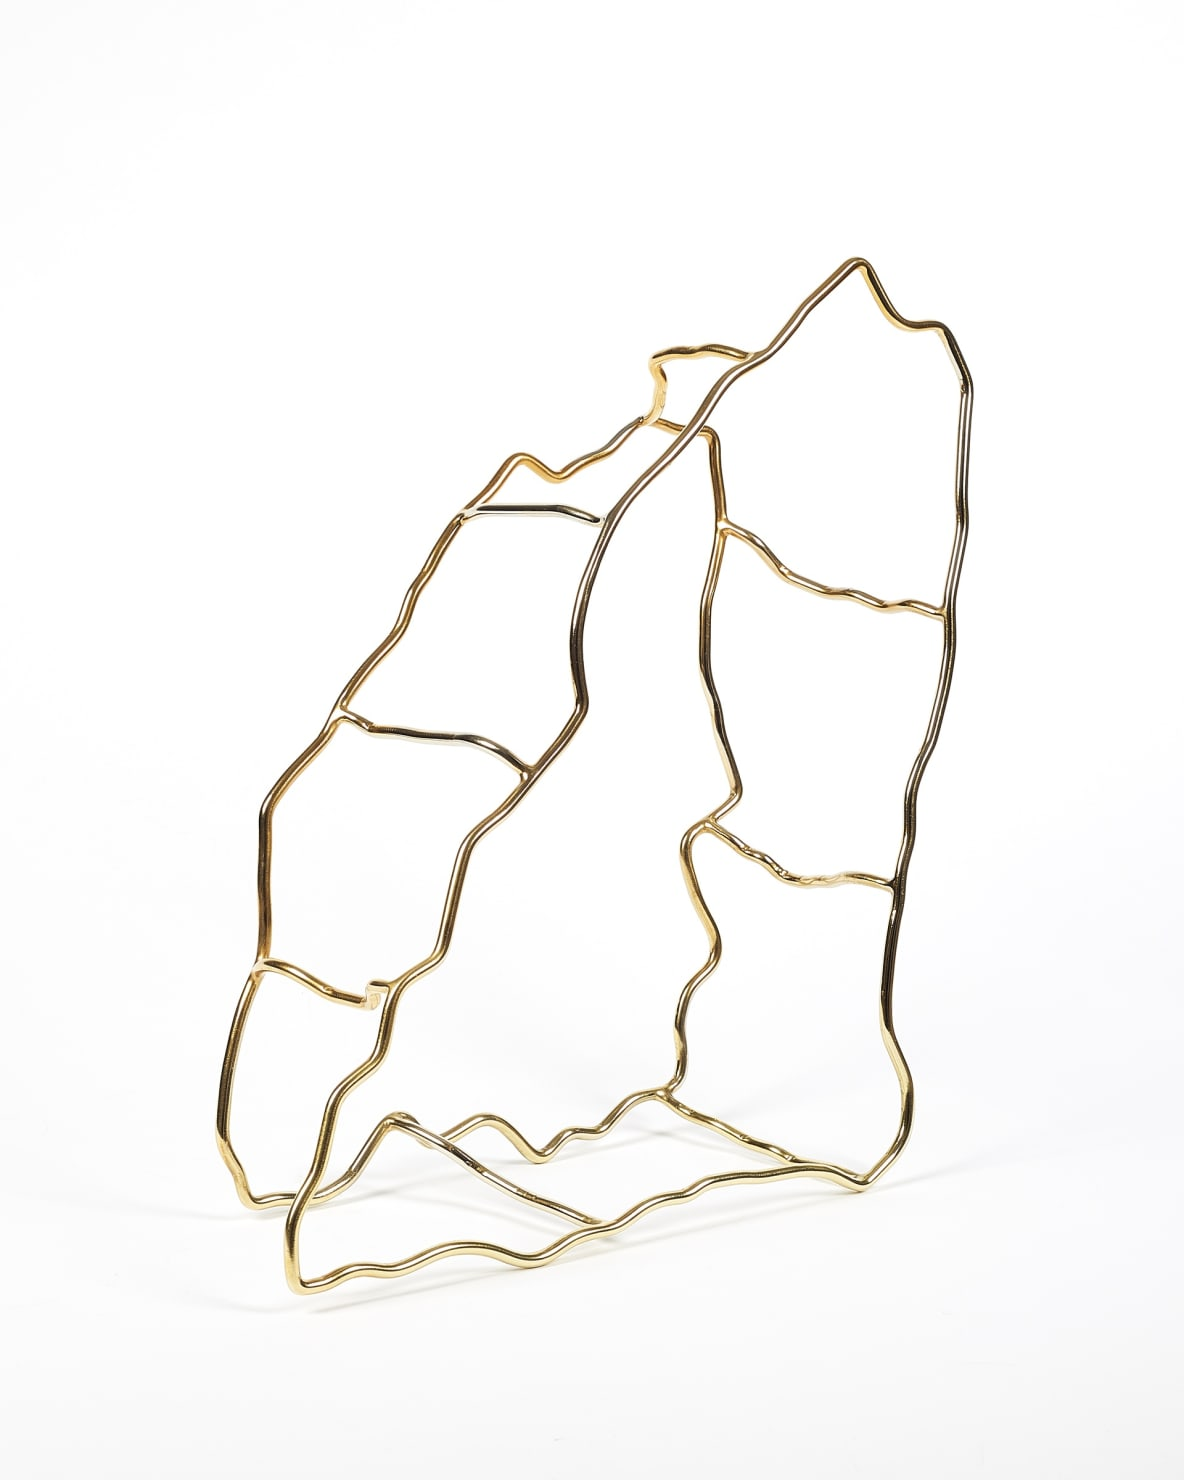 Will Nash Gold Fragment, 2018